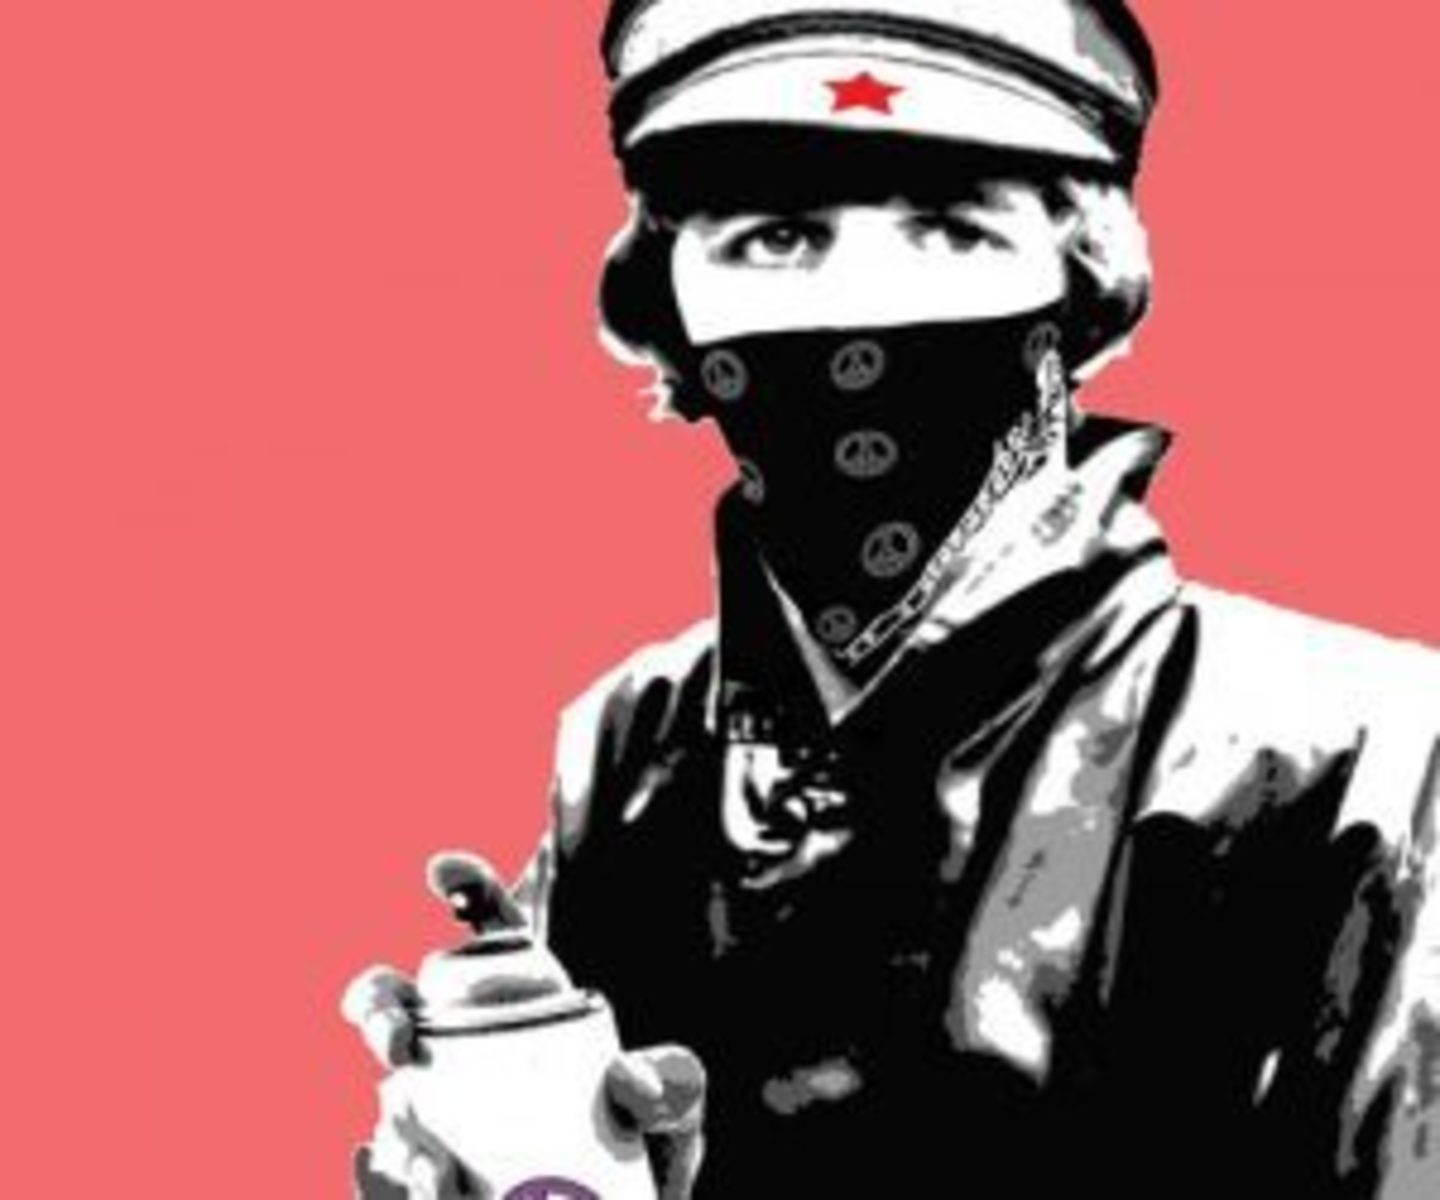 Bandana Man with Paint Can - Limited Art Print by Ringo Starr